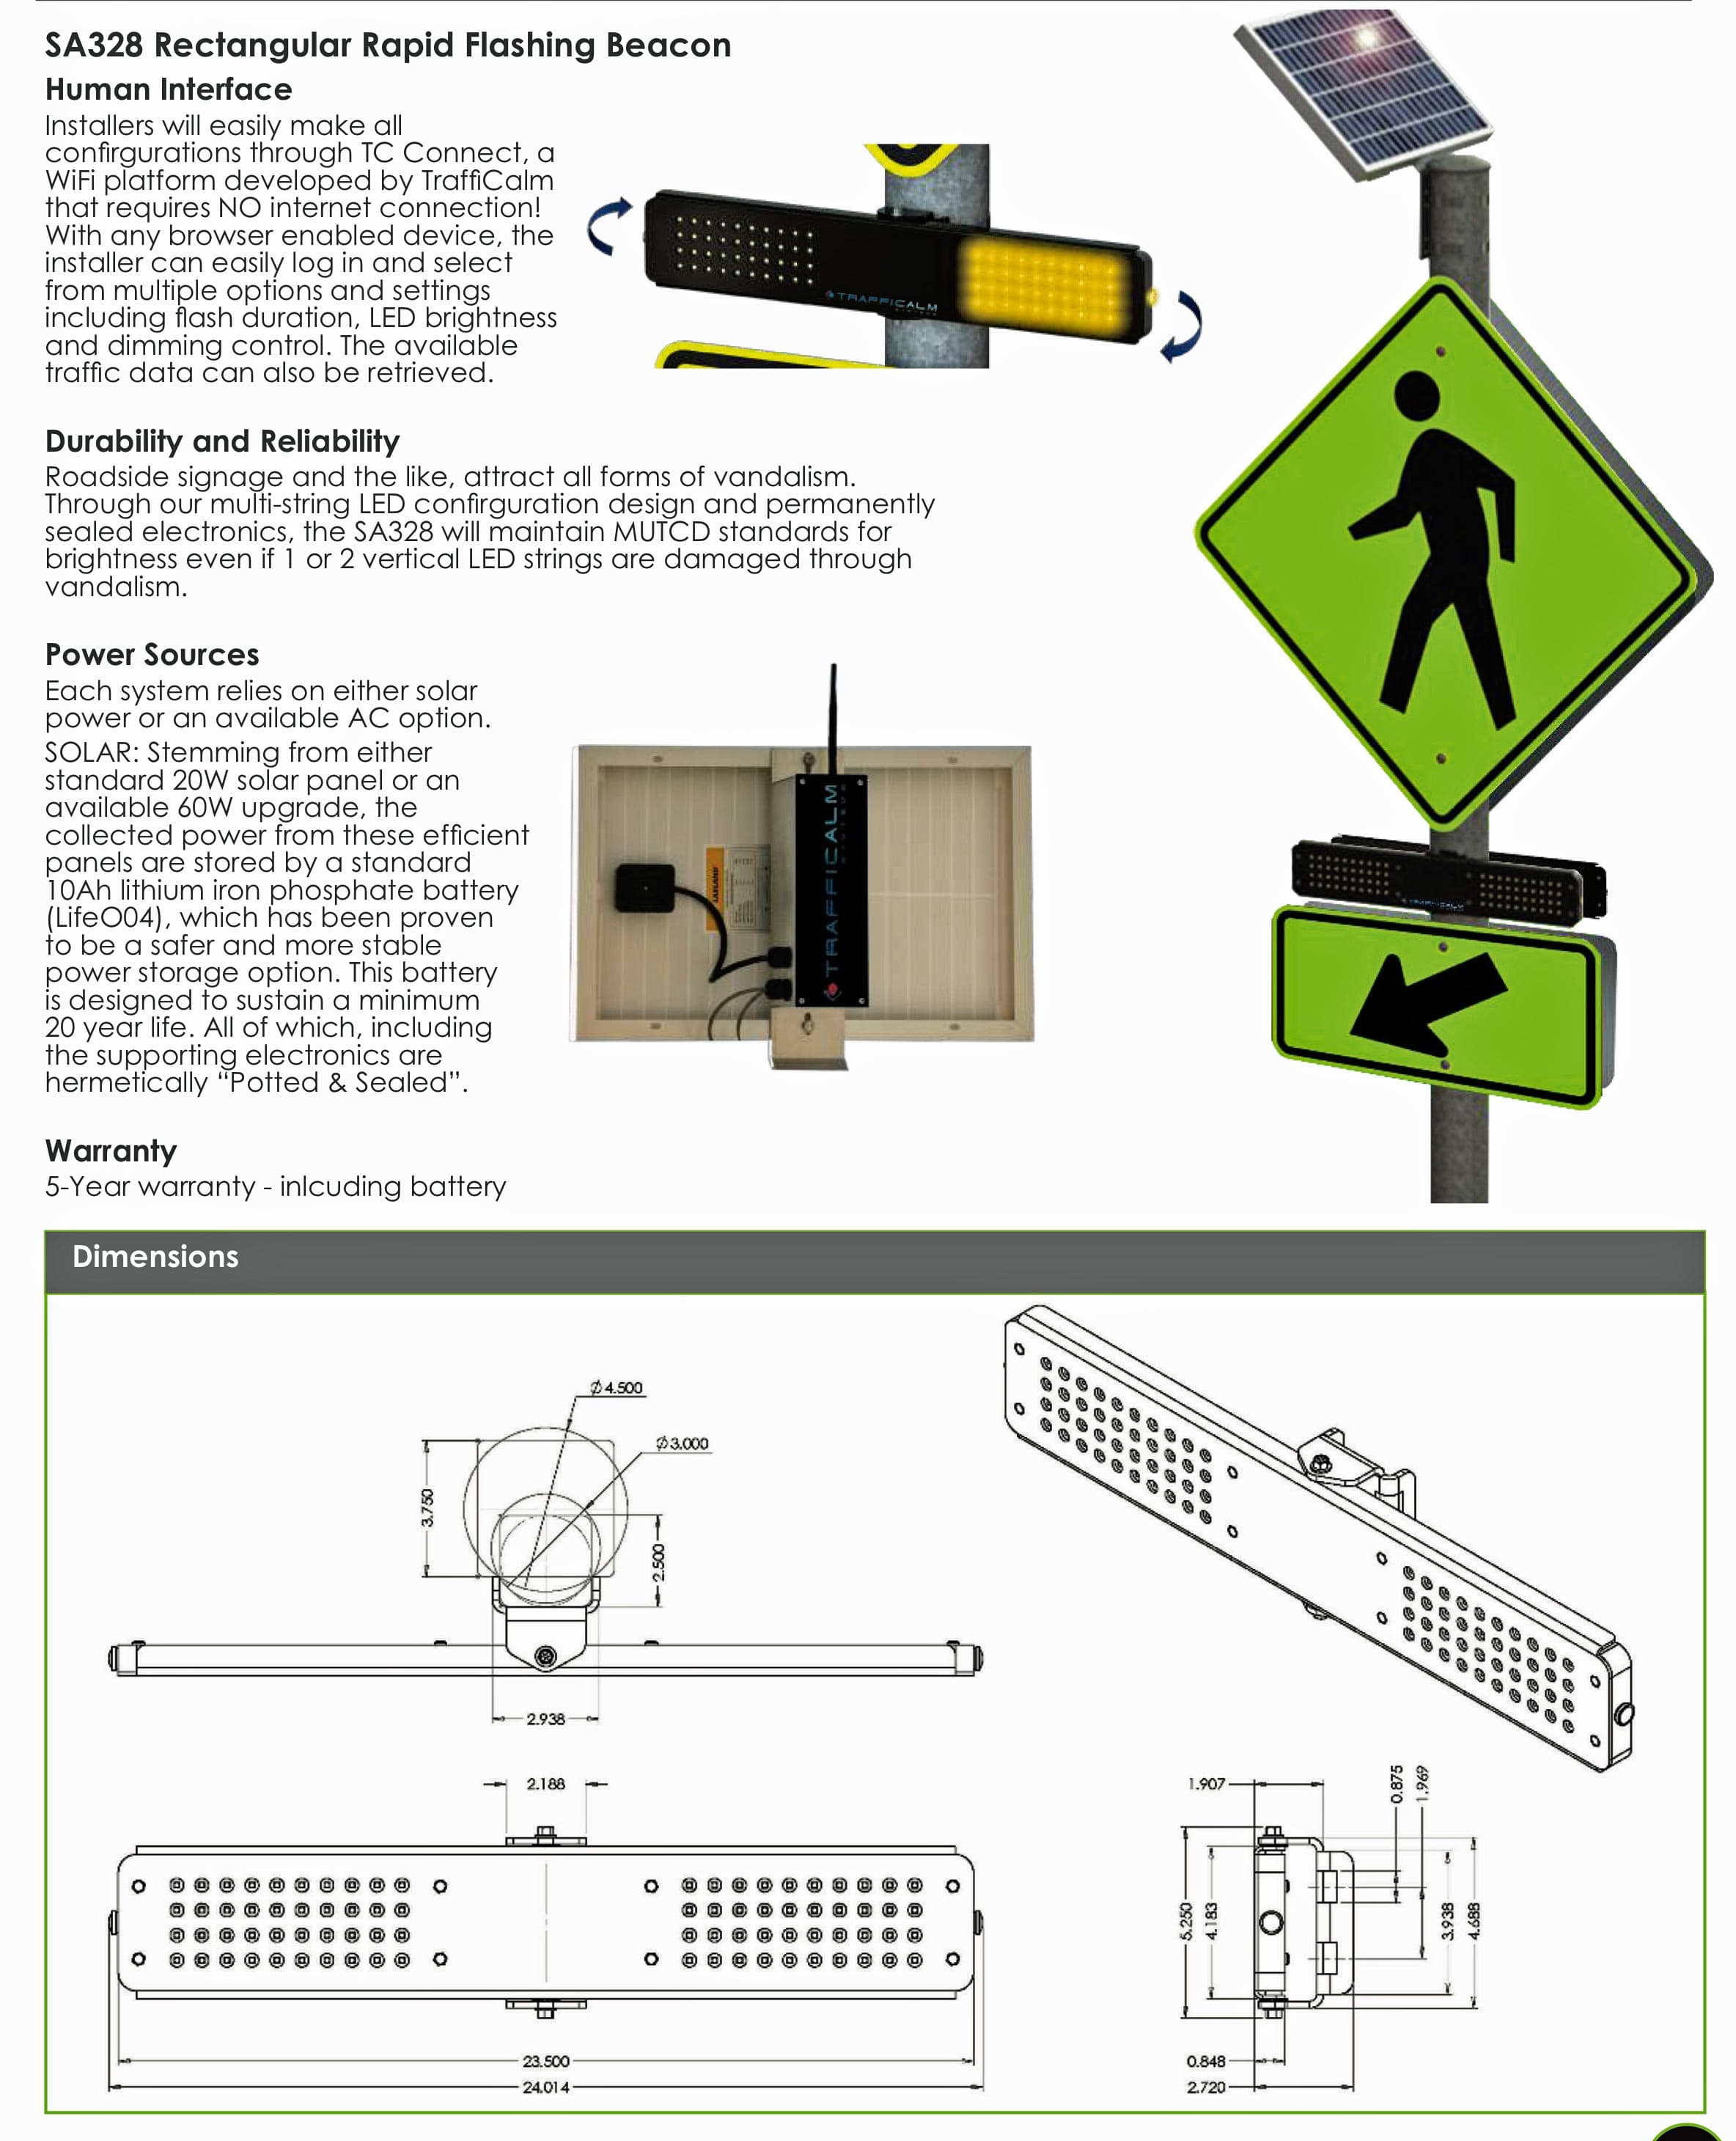 SA328 Rectangular Rapid Flashing Beacon